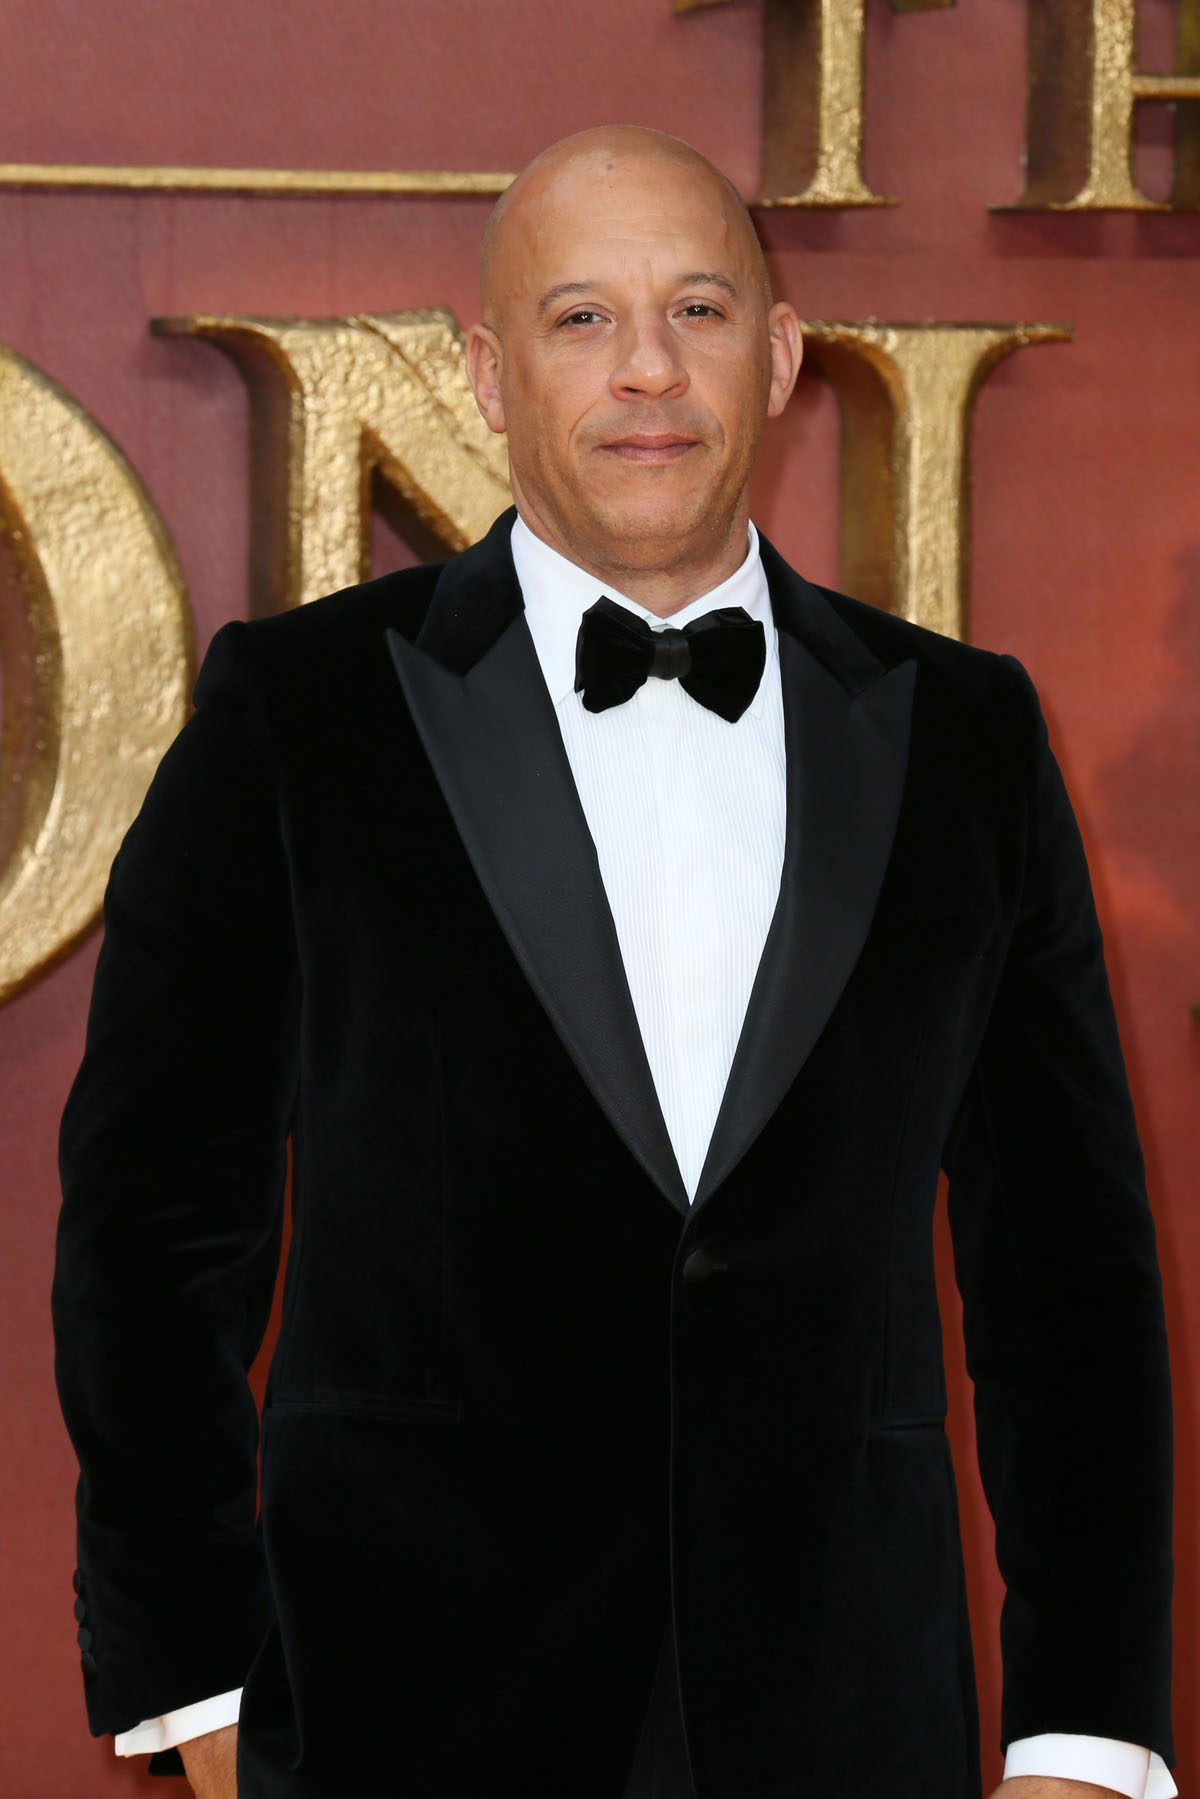 Vin Diesel at The European Premiere of 'The Lion King' held at the Odeon Luxe, Leicester Square